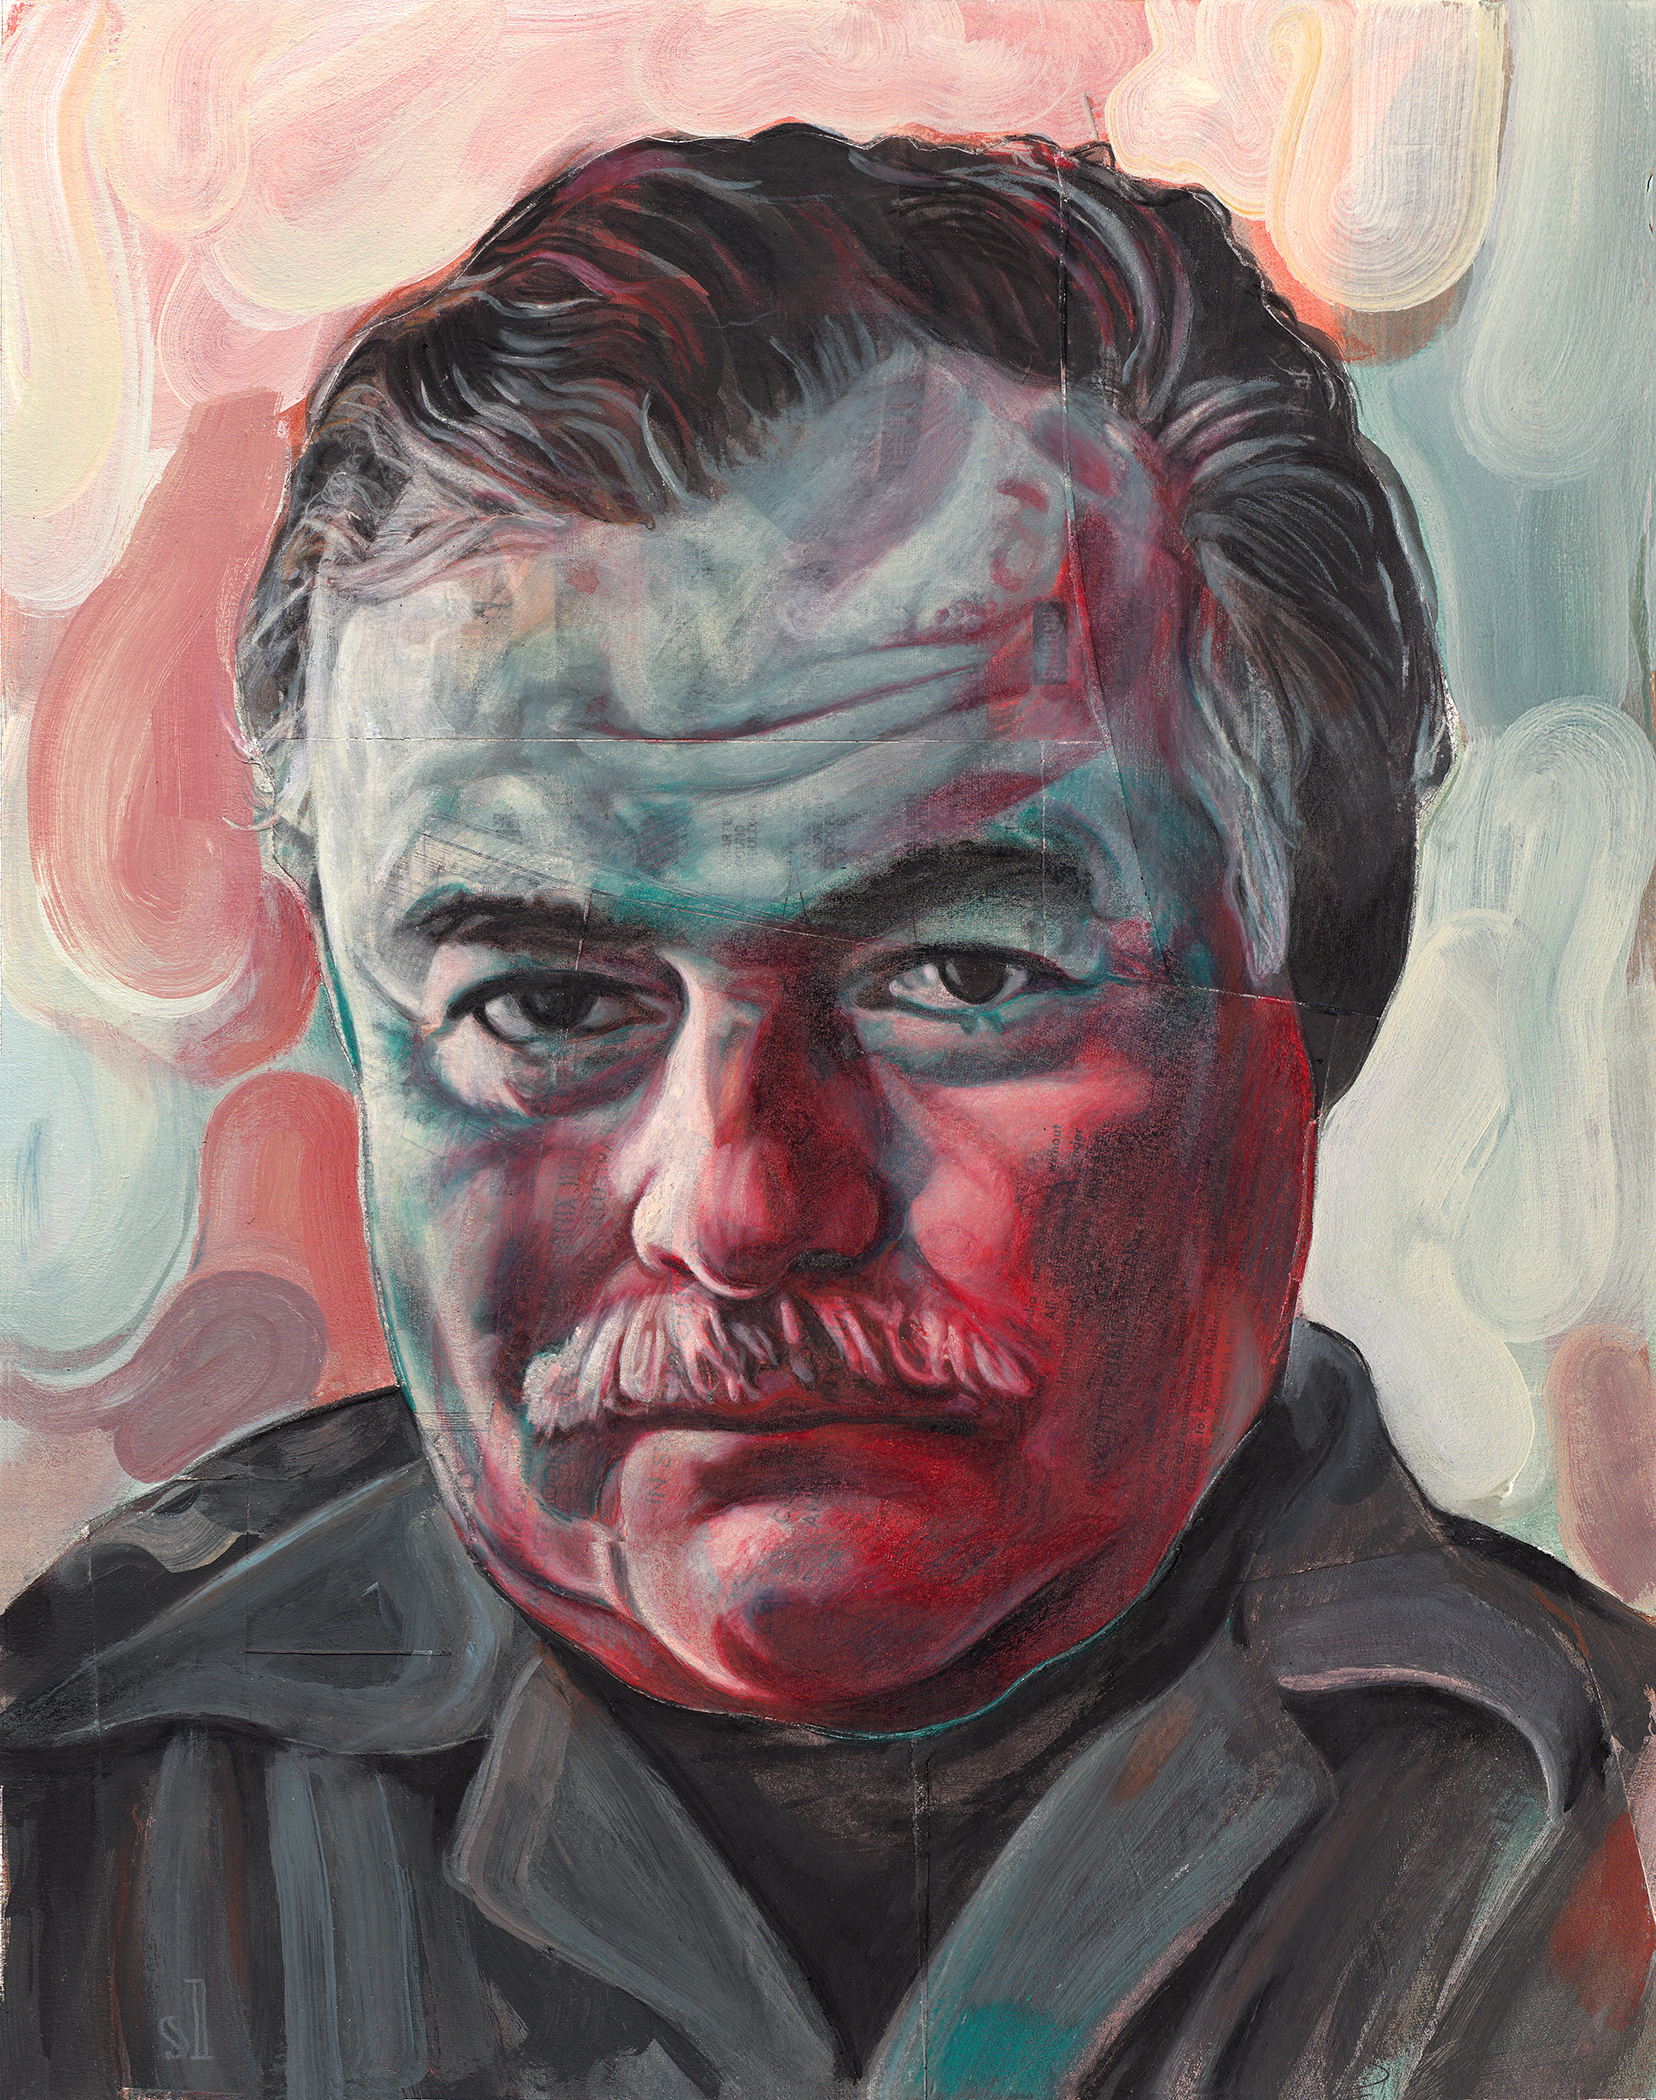 Ernest Hemingway / Private commission